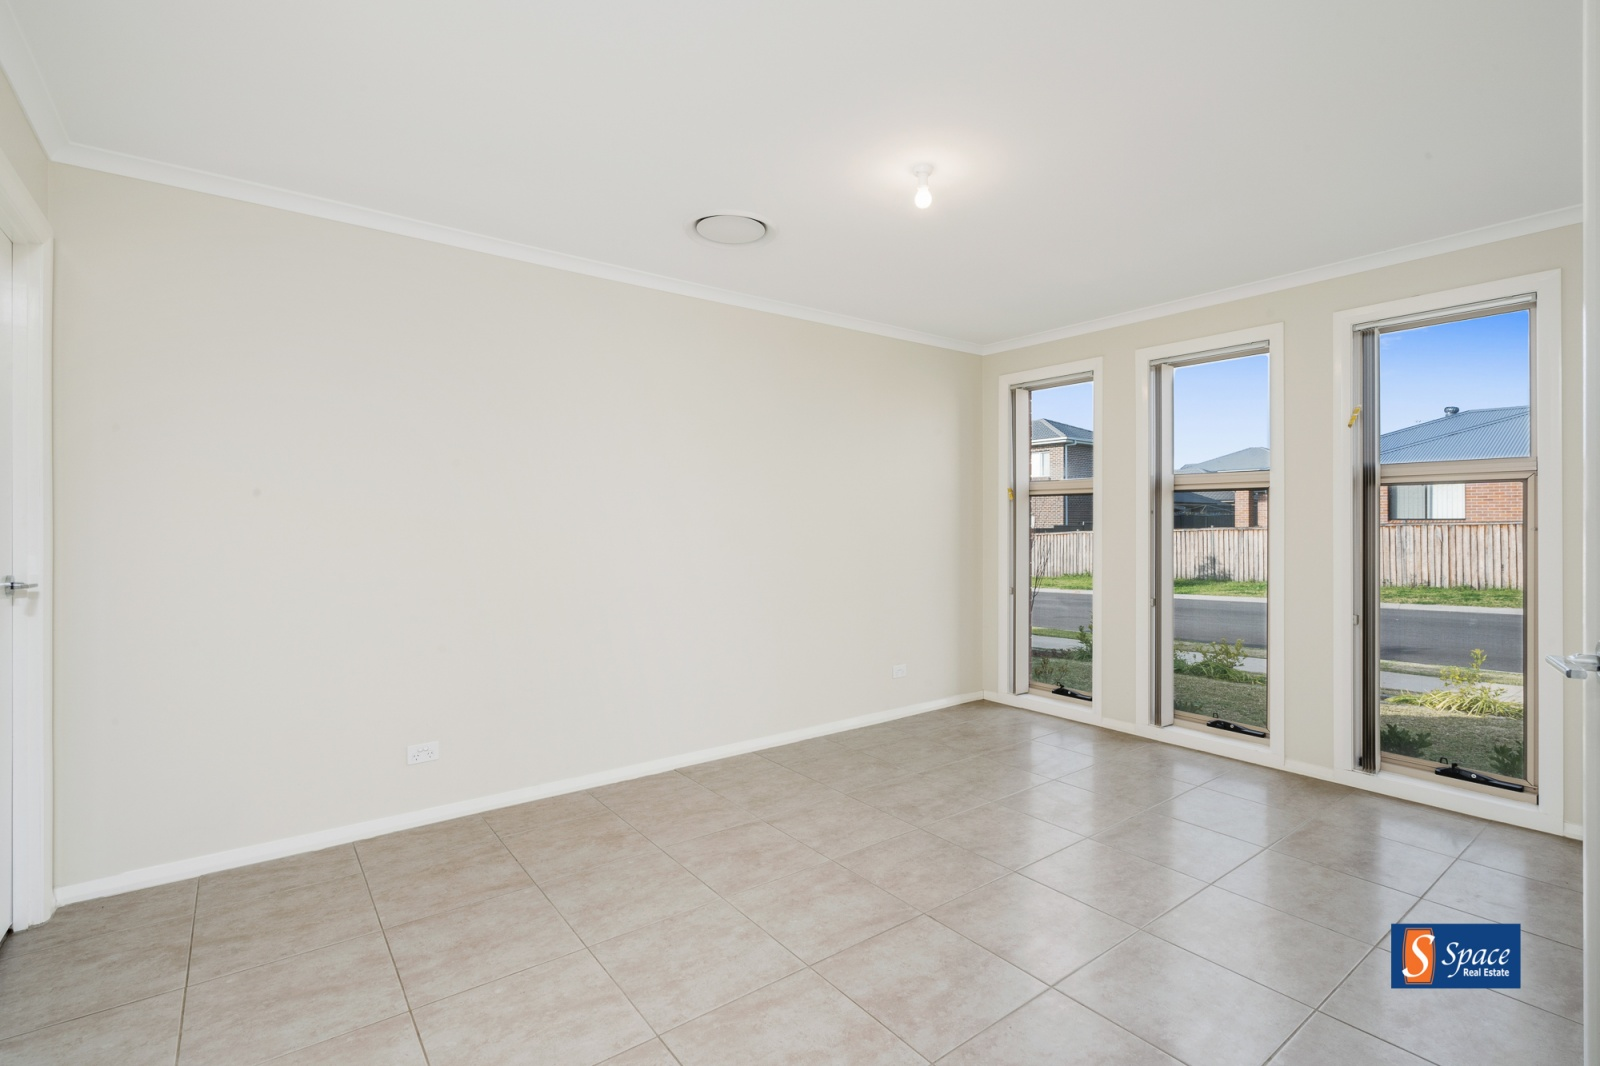 23 Jones Street,Oran Park,NSW,4 Bedrooms Bedrooms,2 BathroomsBathrooms,House,Jones Street,1448